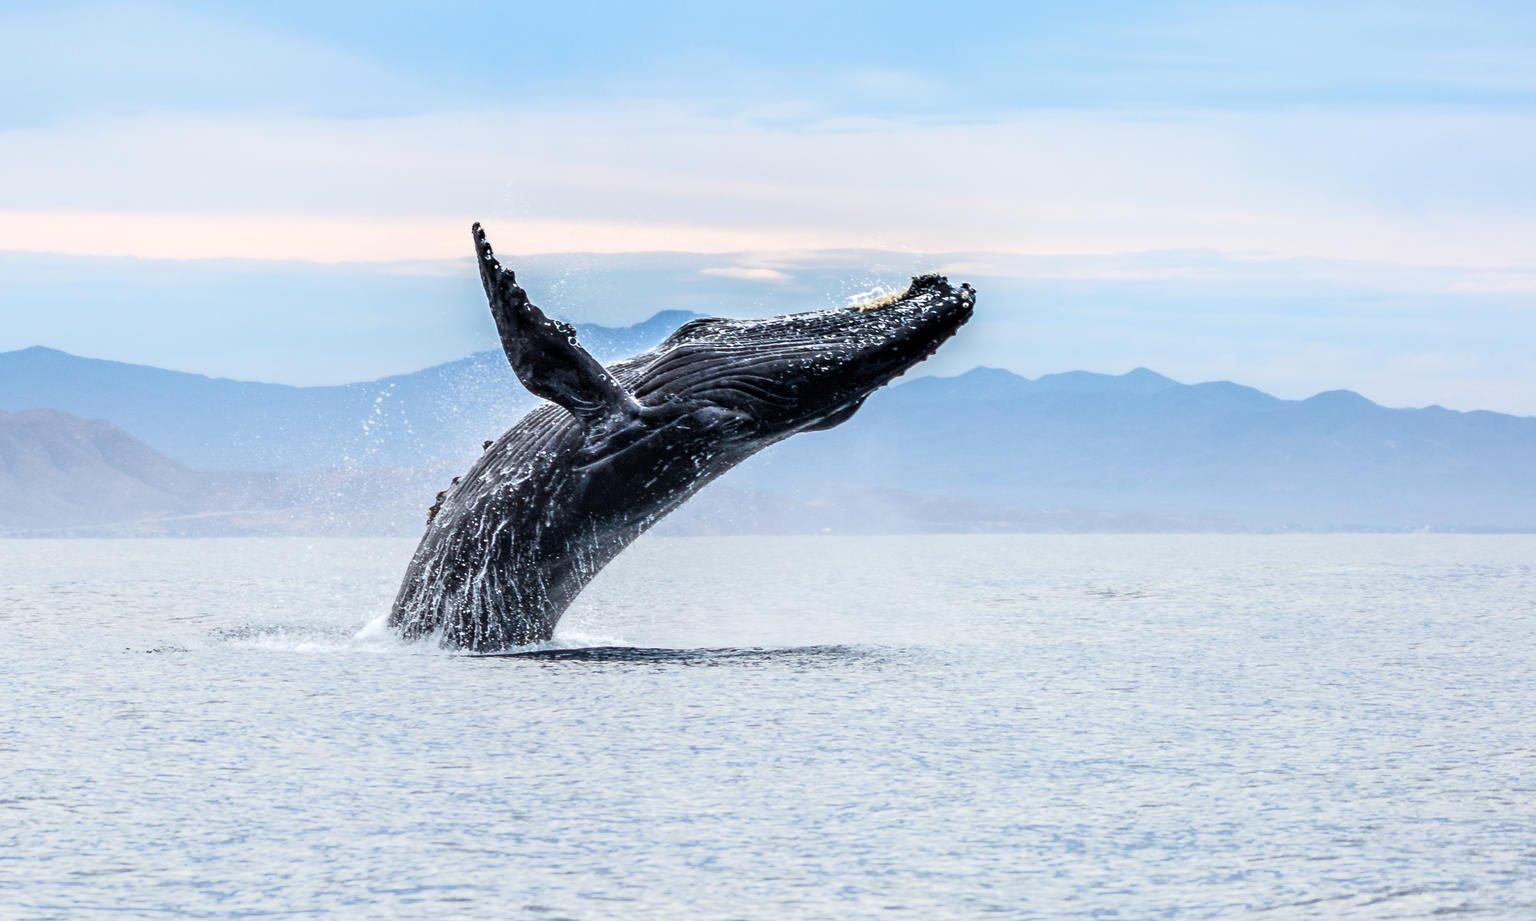 humpback whale breaching out of the ocean with mountains in the background